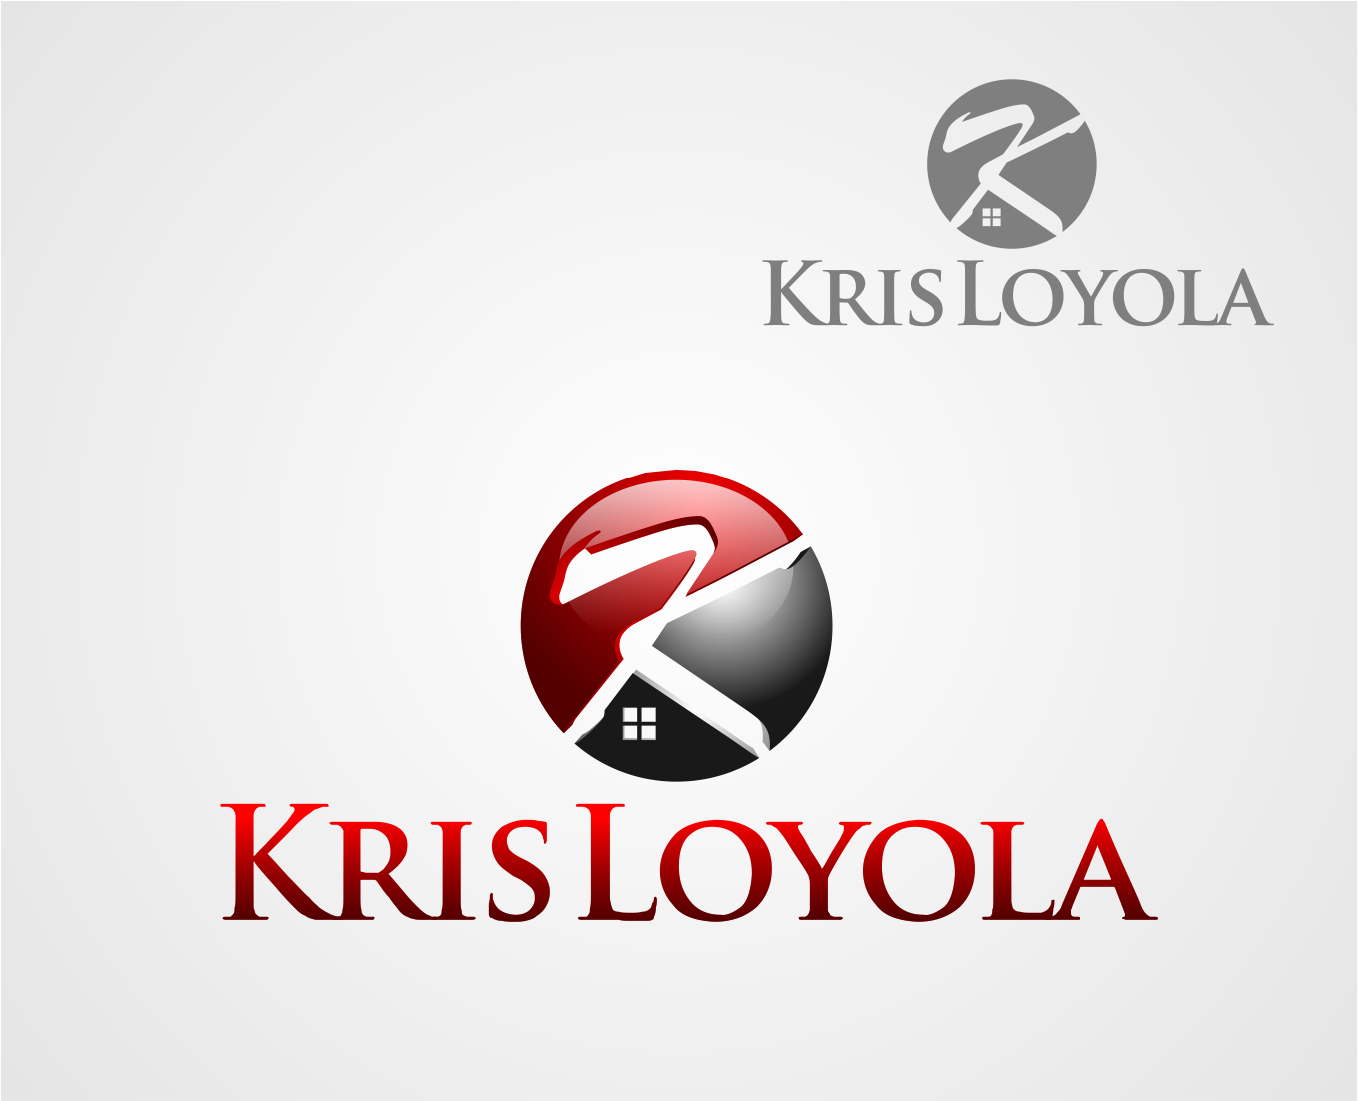 Logo Design by Reivan Ferdinan - Entry No. 16 in the Logo Design Contest Kris Loyola Logo Design.